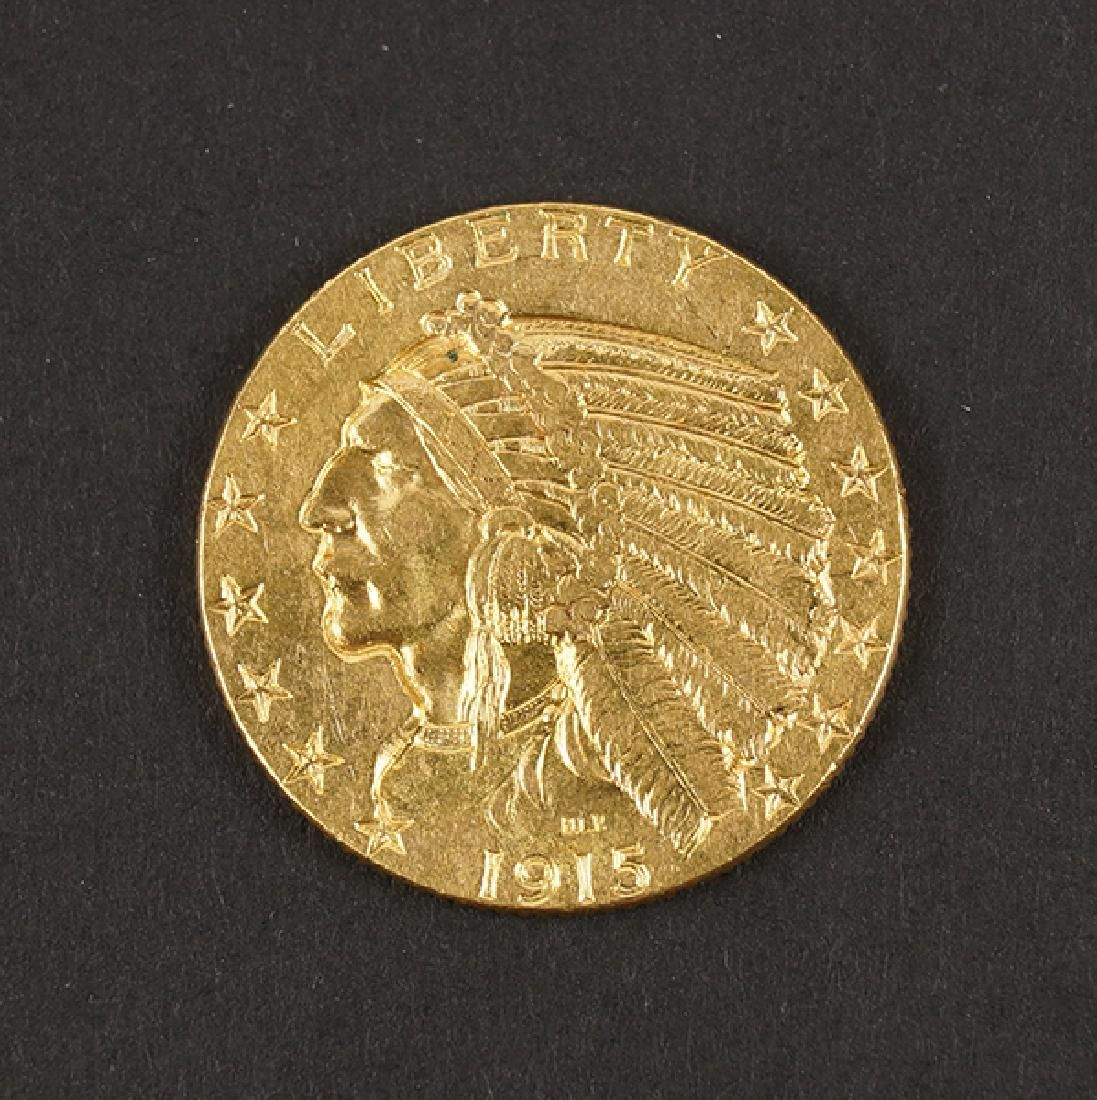 1915 US $5 INDIAN HEAD GOLD COIN.